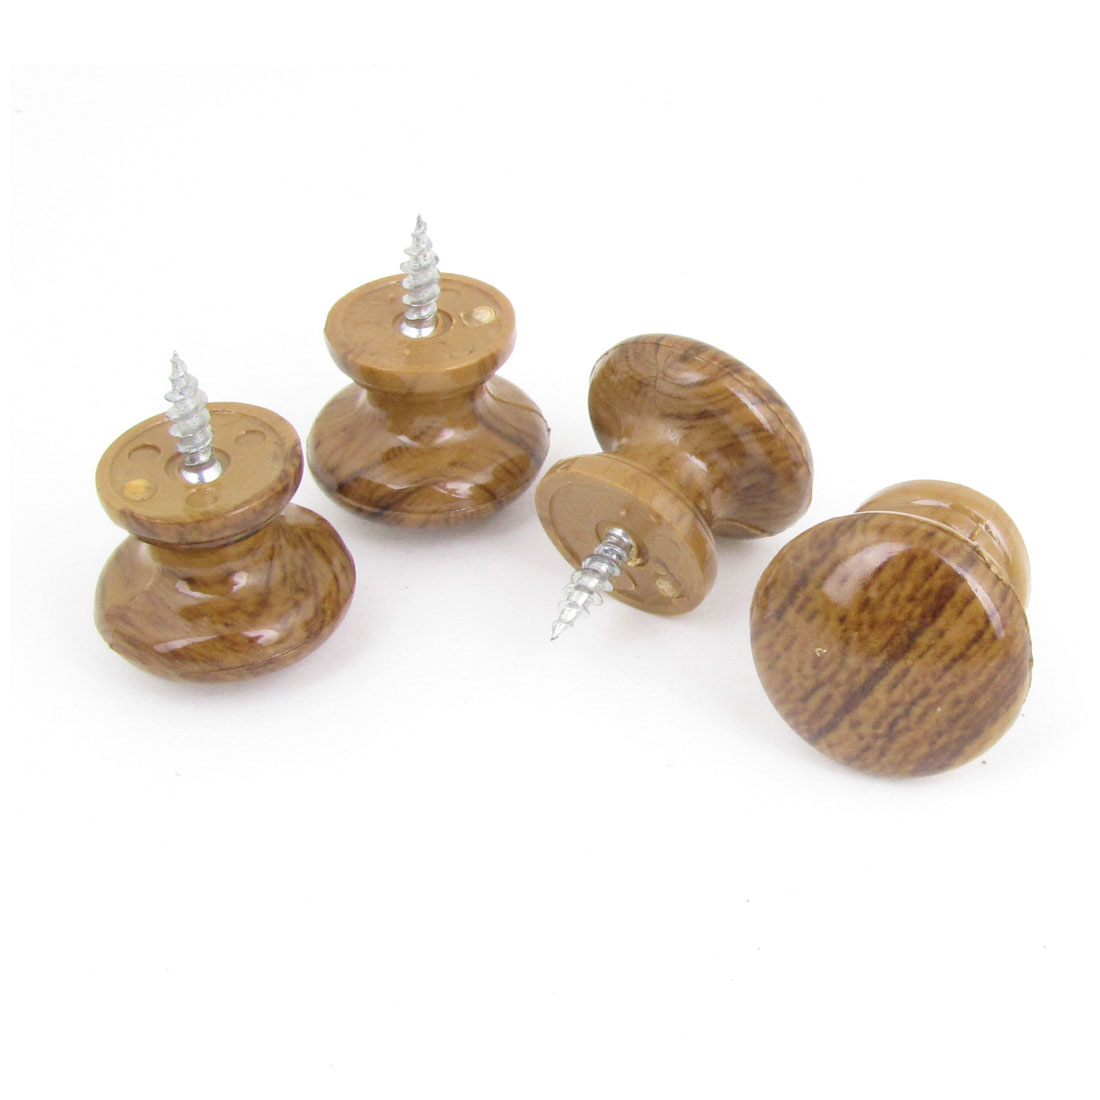 4 Pcs Household Wood Color Plastic Ball Shape Cabinet Drawer Handle Pull Knob